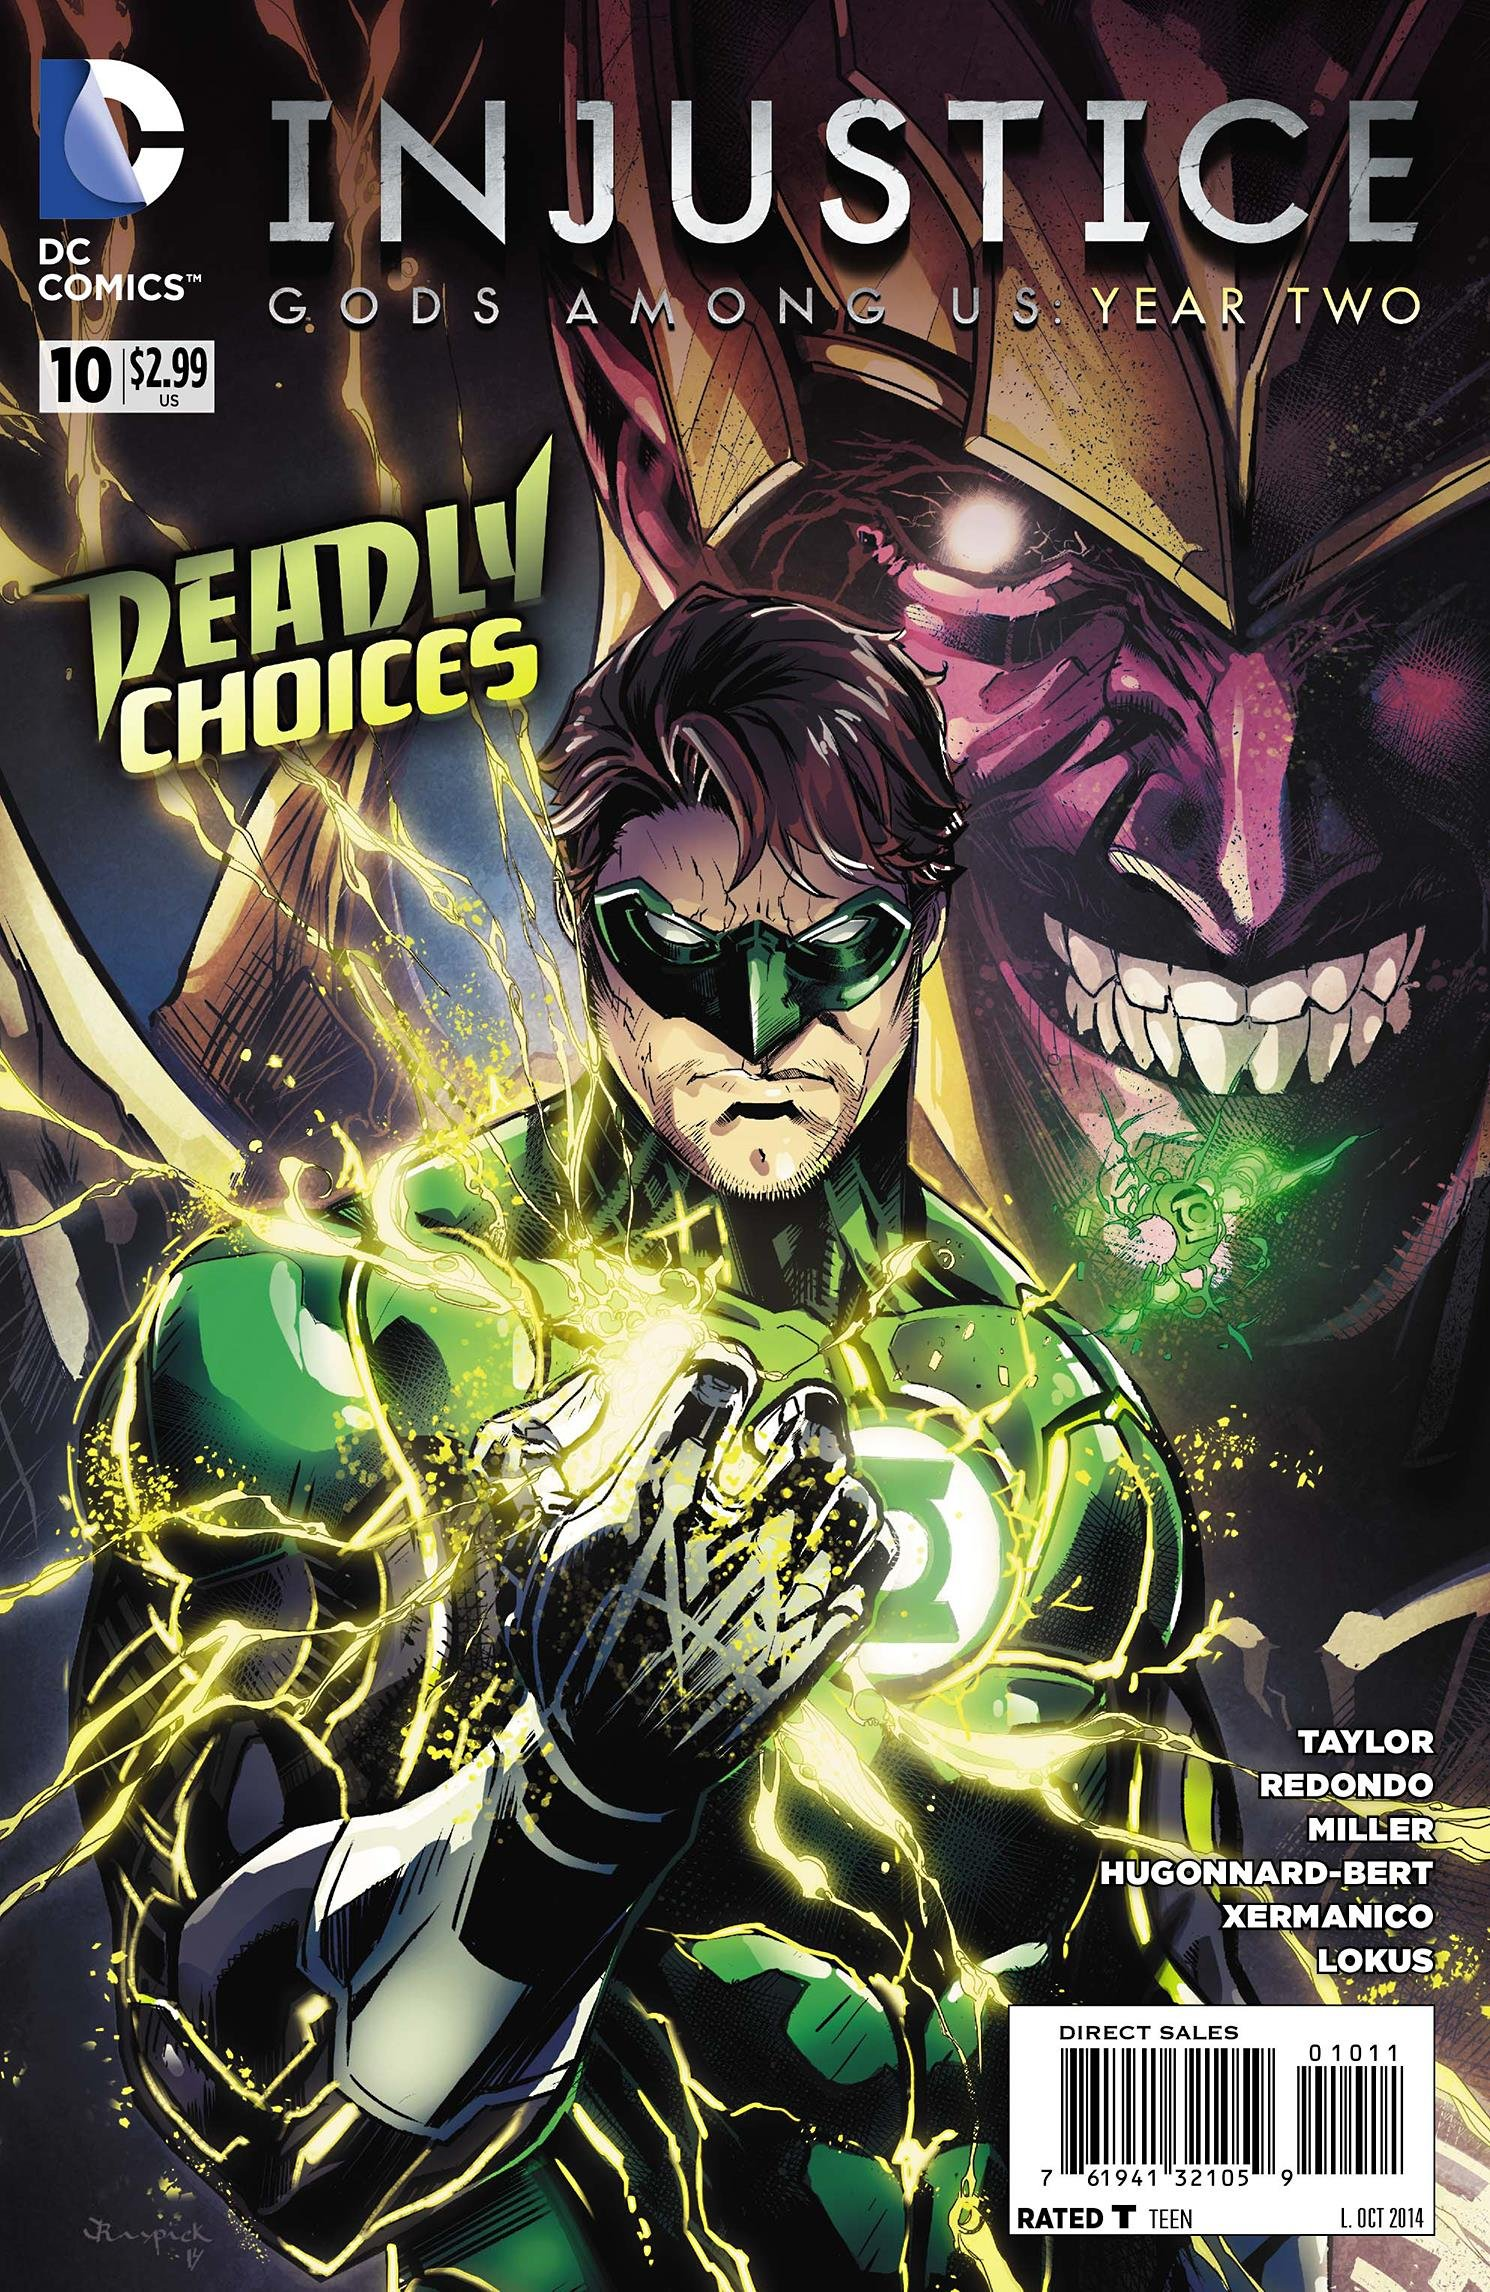 Injustice - Gods Among Us: Year Two 010 (October 2014)